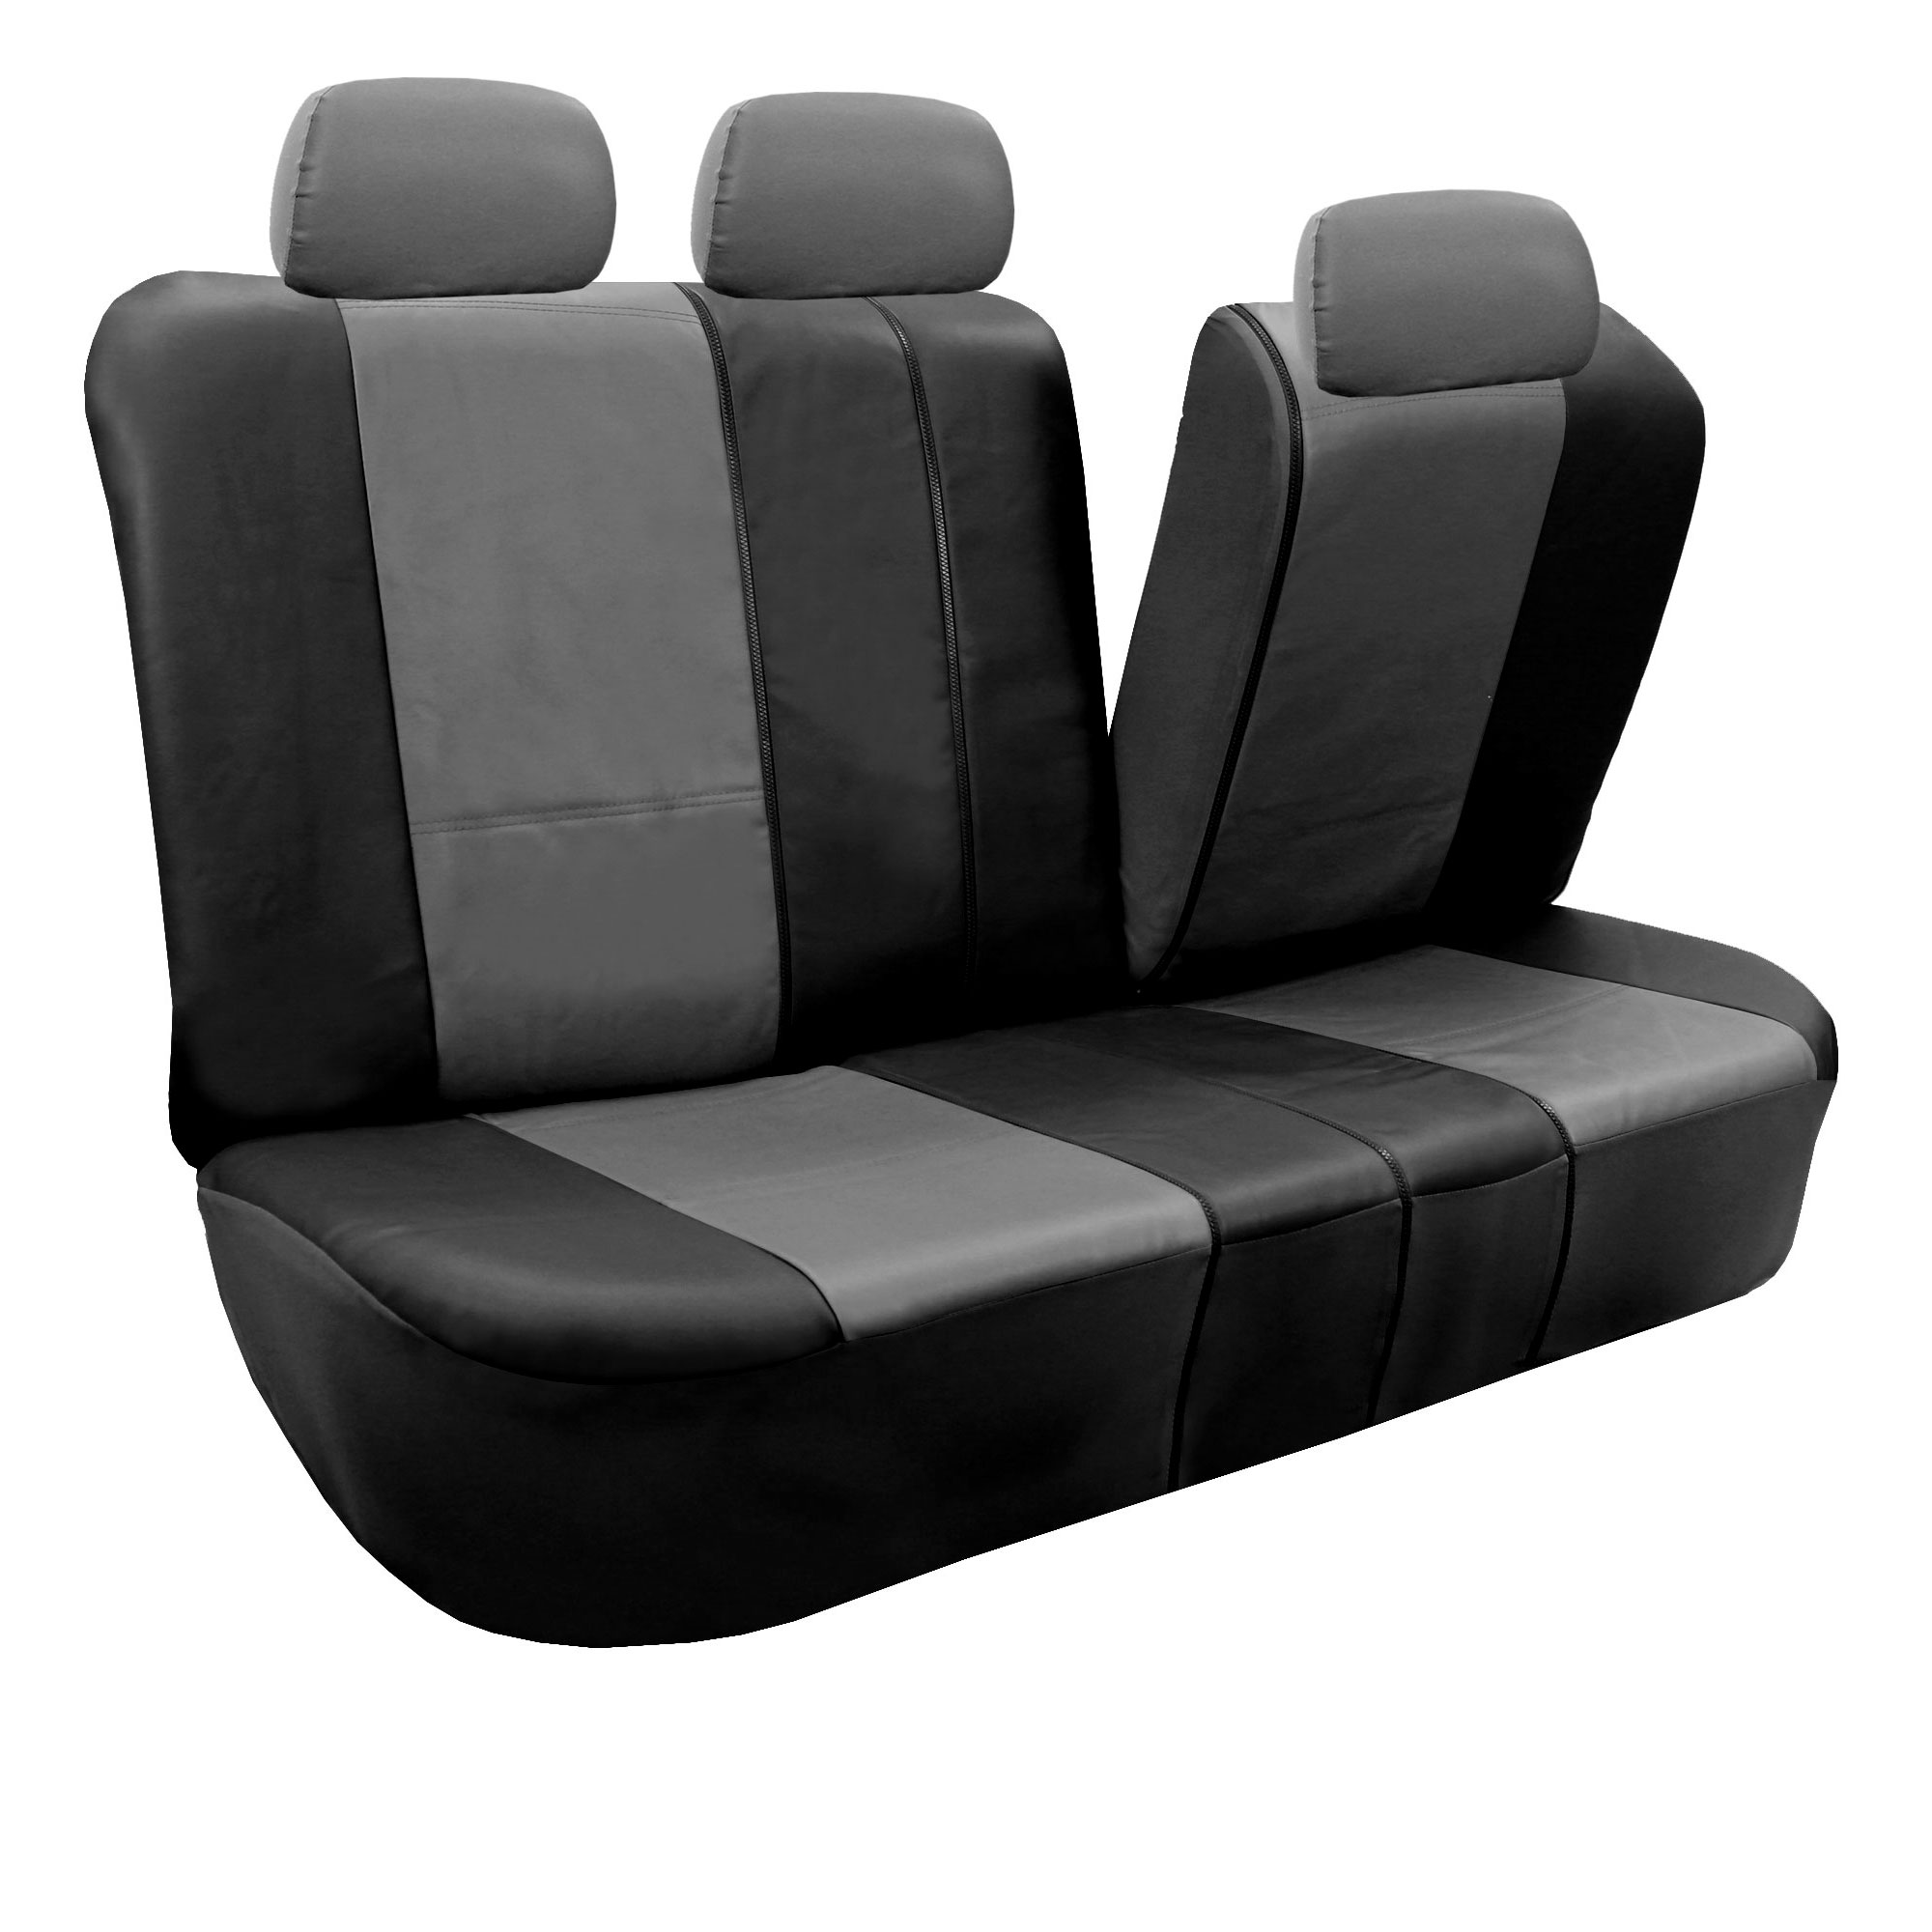 Built In Seat Belt Auto Seat Covers W Beige Floor Mats